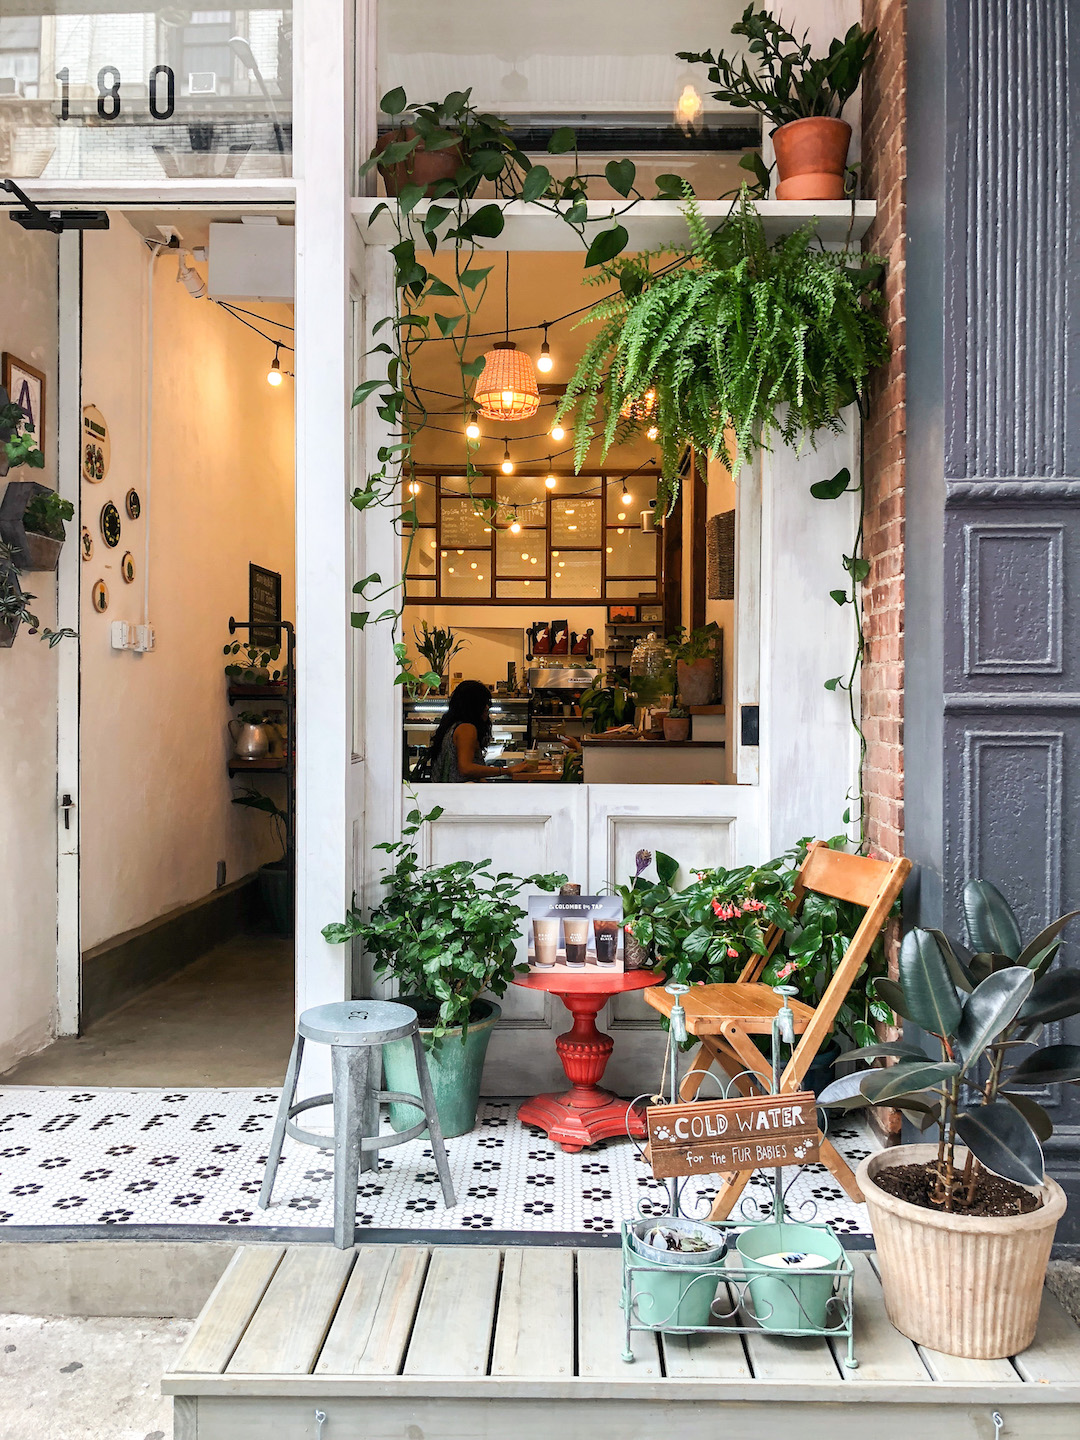 Urban Backyard Coffee Shop in NYC